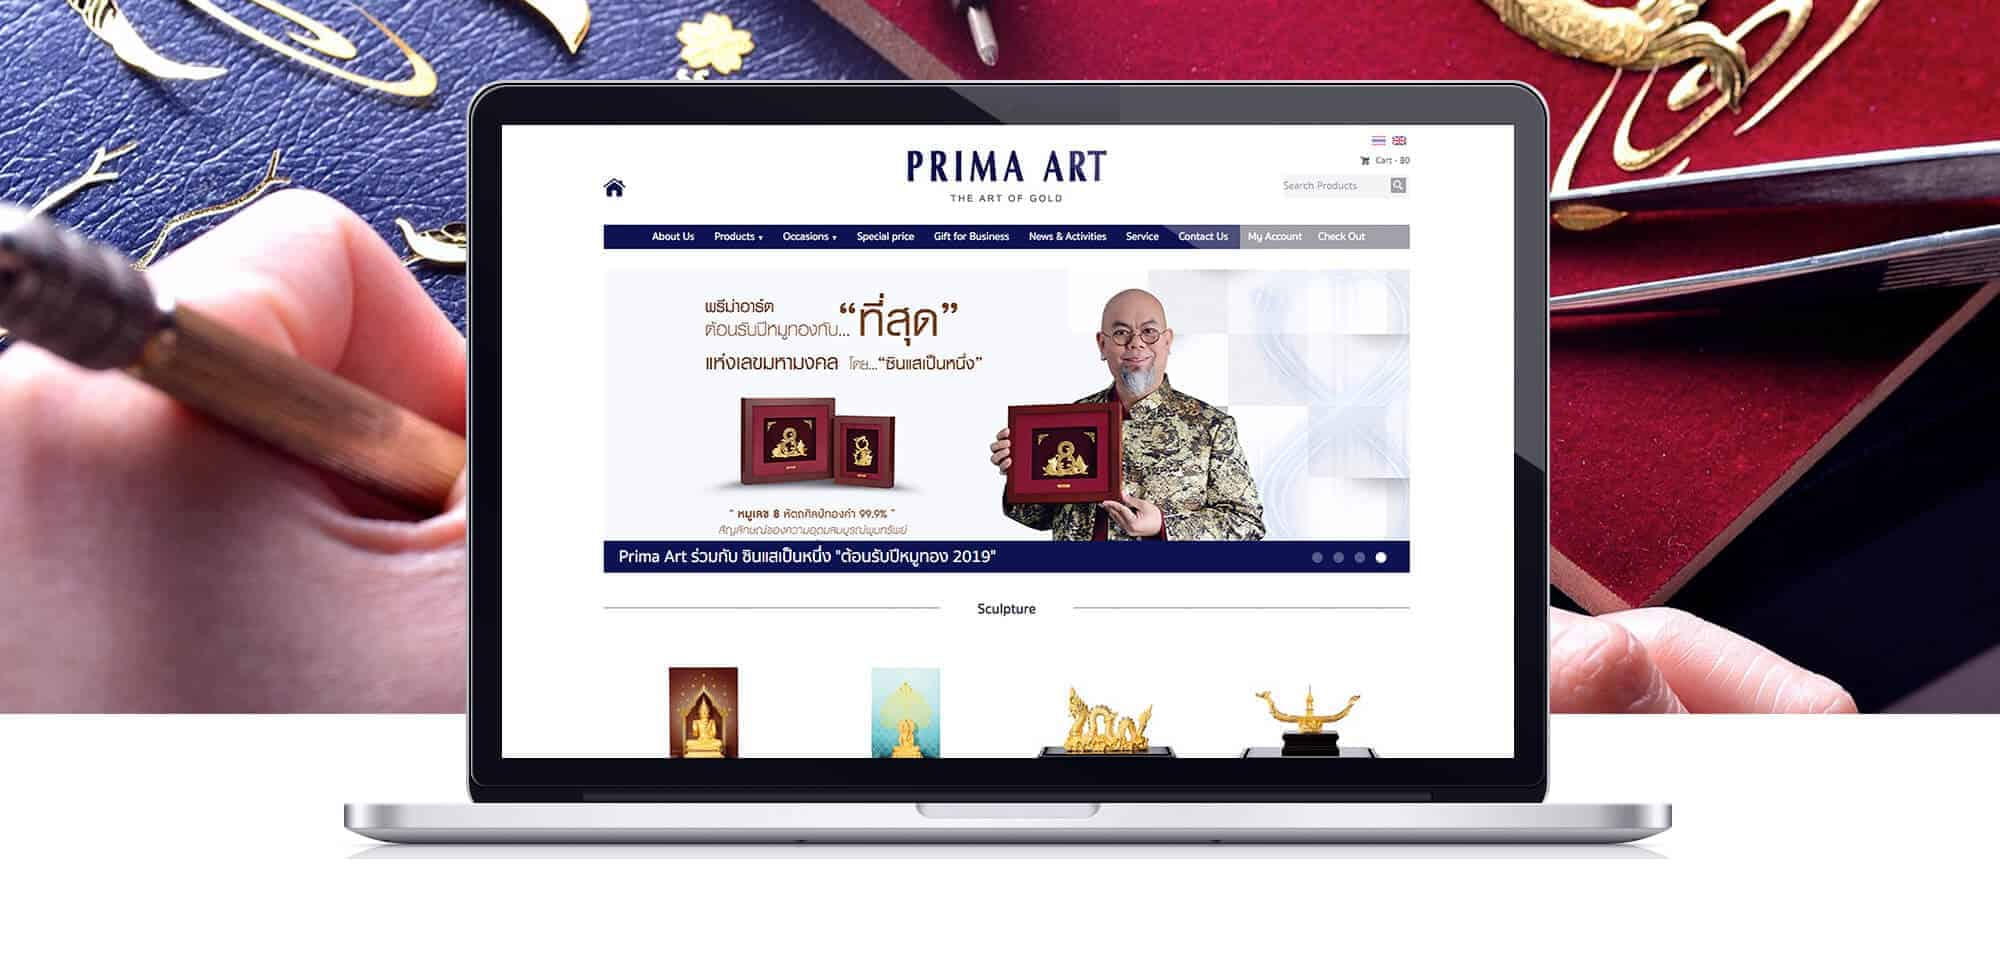 prima-art-ecommerce-web-design-1